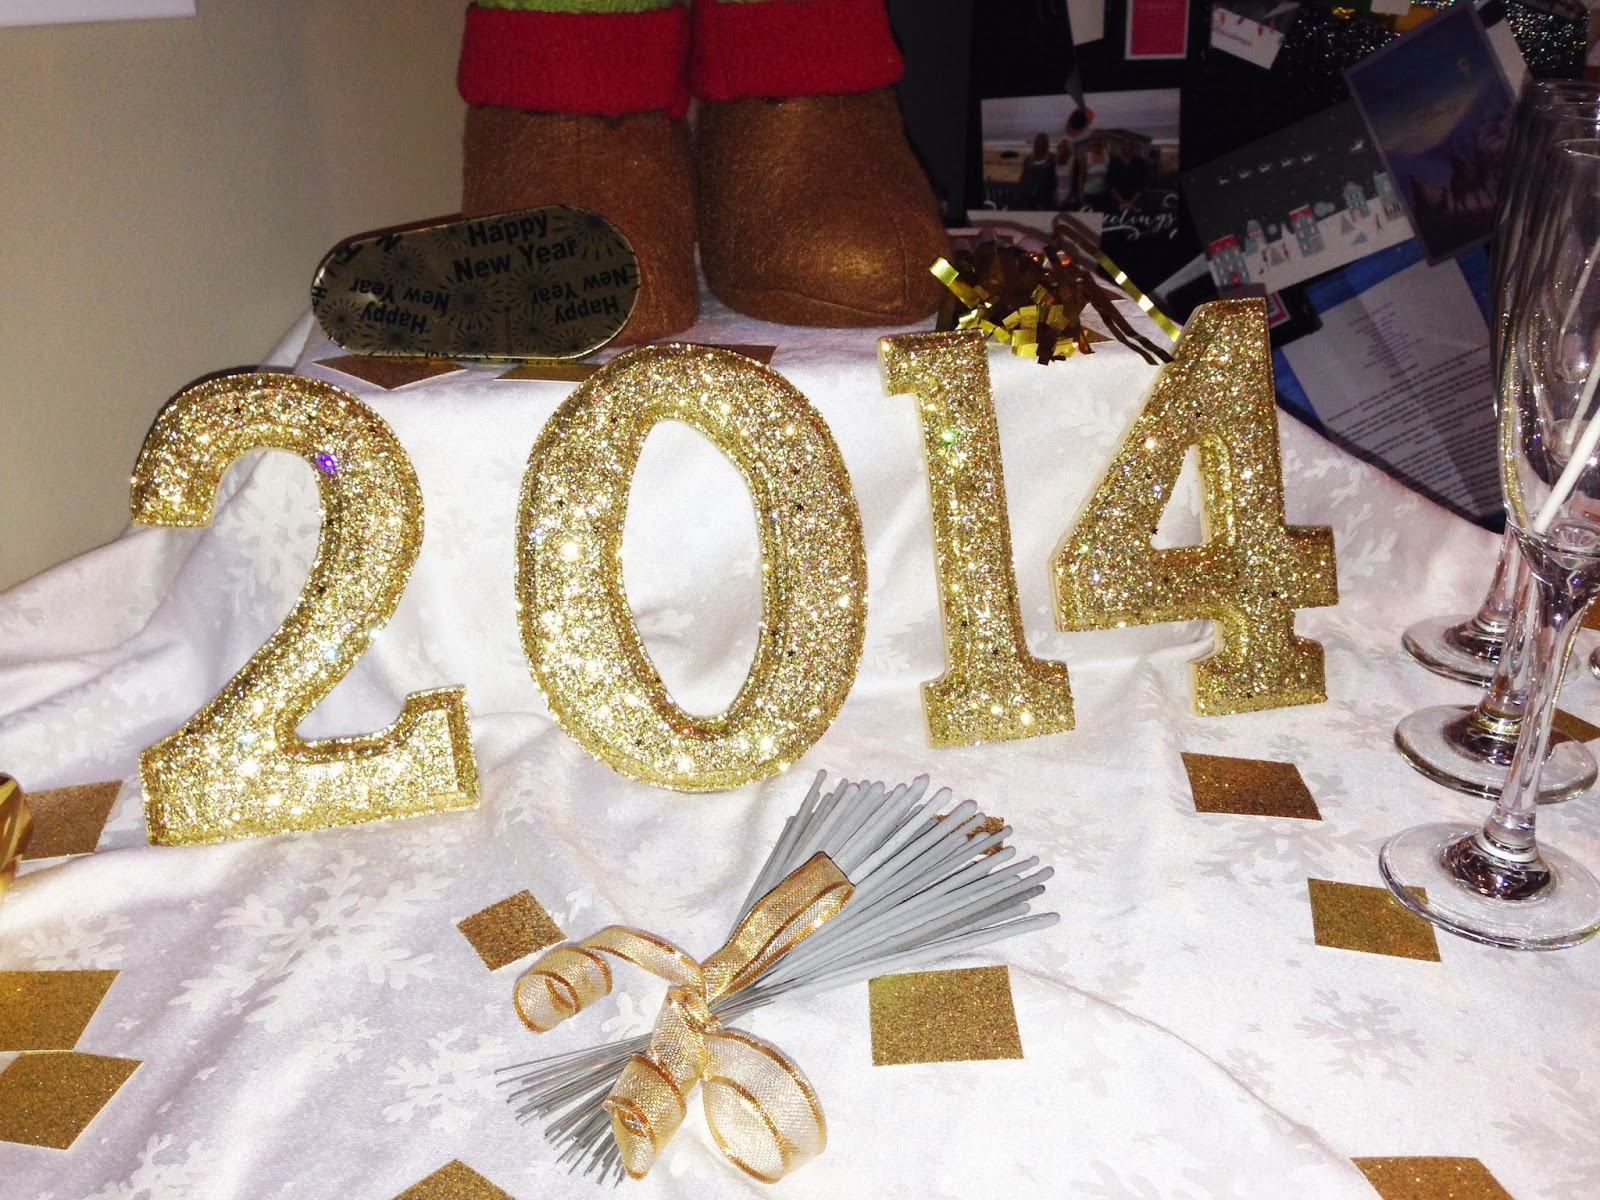 DIY New Years Eve table decorations | Choosing Happy Blog